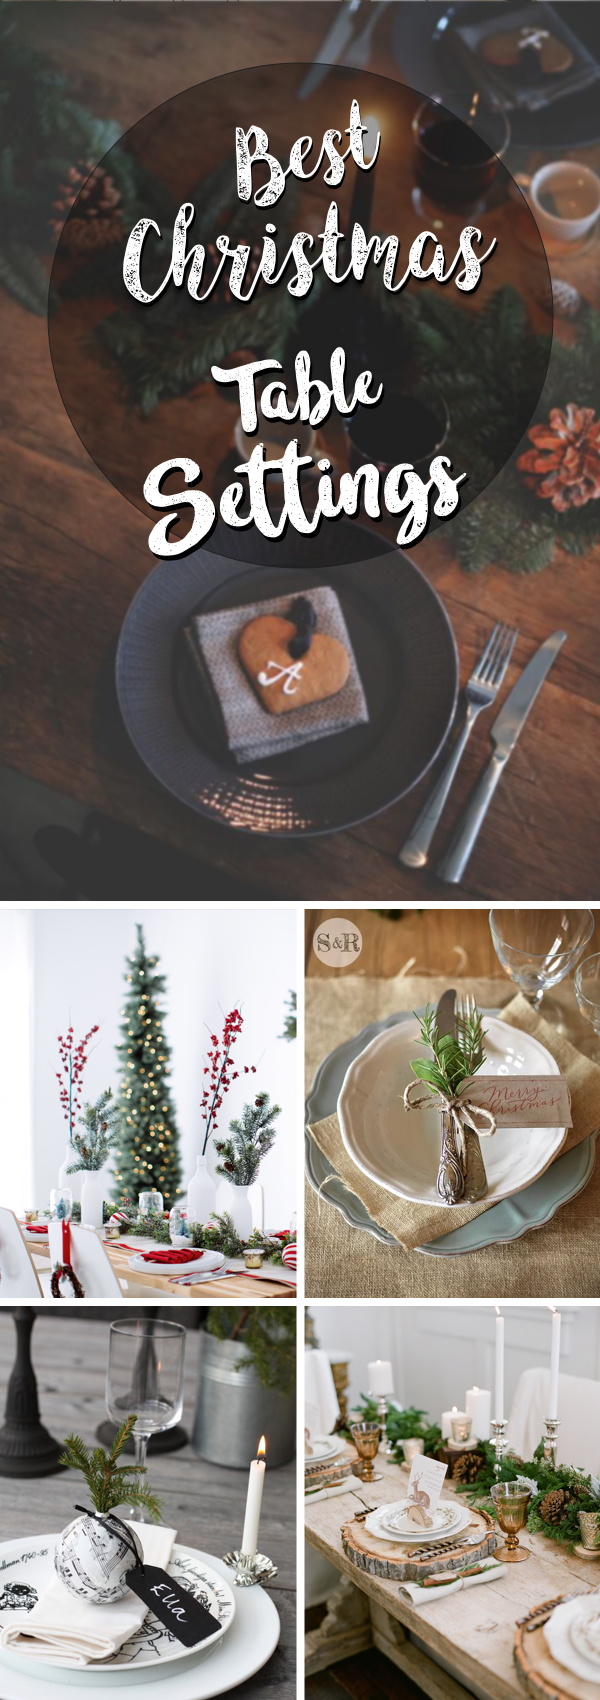 20 Christmas Table Settings Making your Meal as Gorgeous as It's Delicious